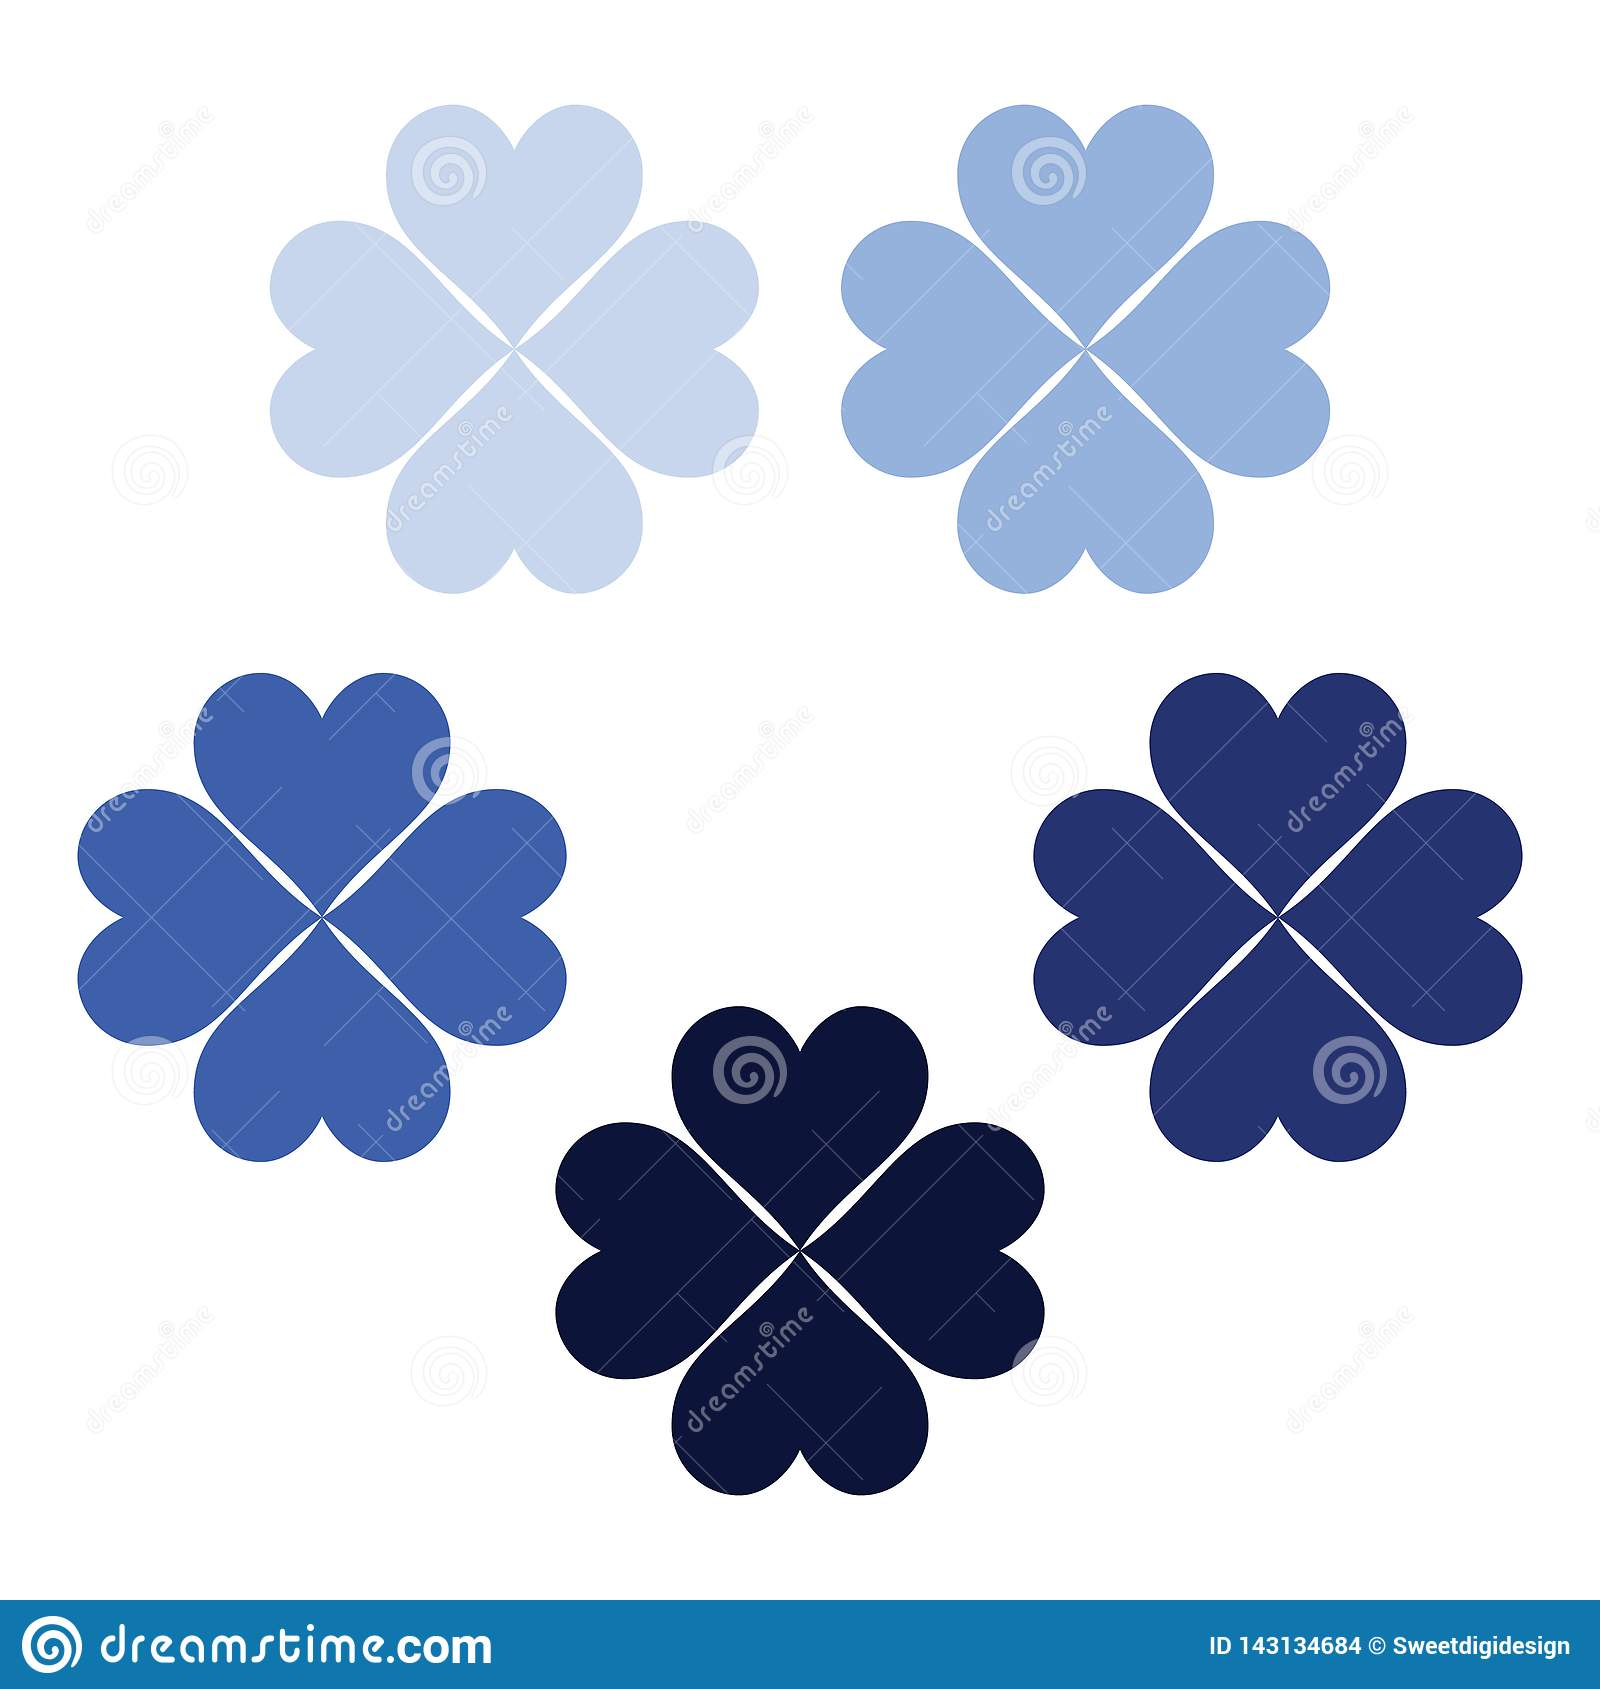 Navy blue set of clover leaves, a symbol of luck, poker symbol icon.